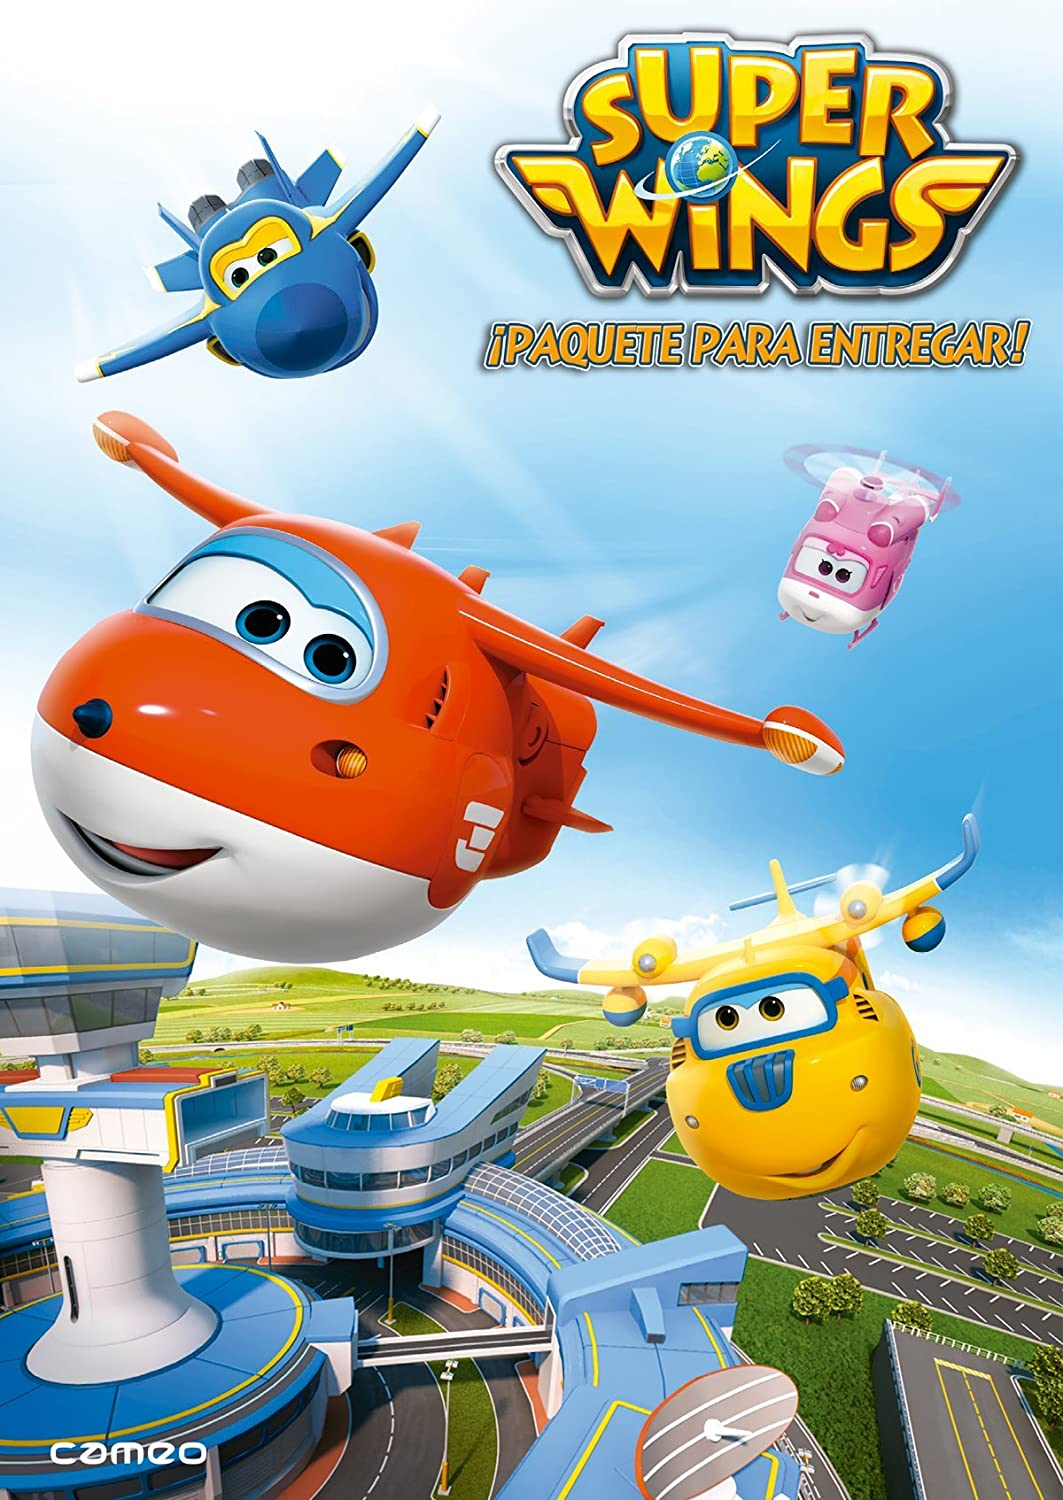 Super Wings ¡paquete entregar! [DVD]: Amazon.es: Dibujos animados, Josh Selig, Dibujos animados: Cine y Series TV